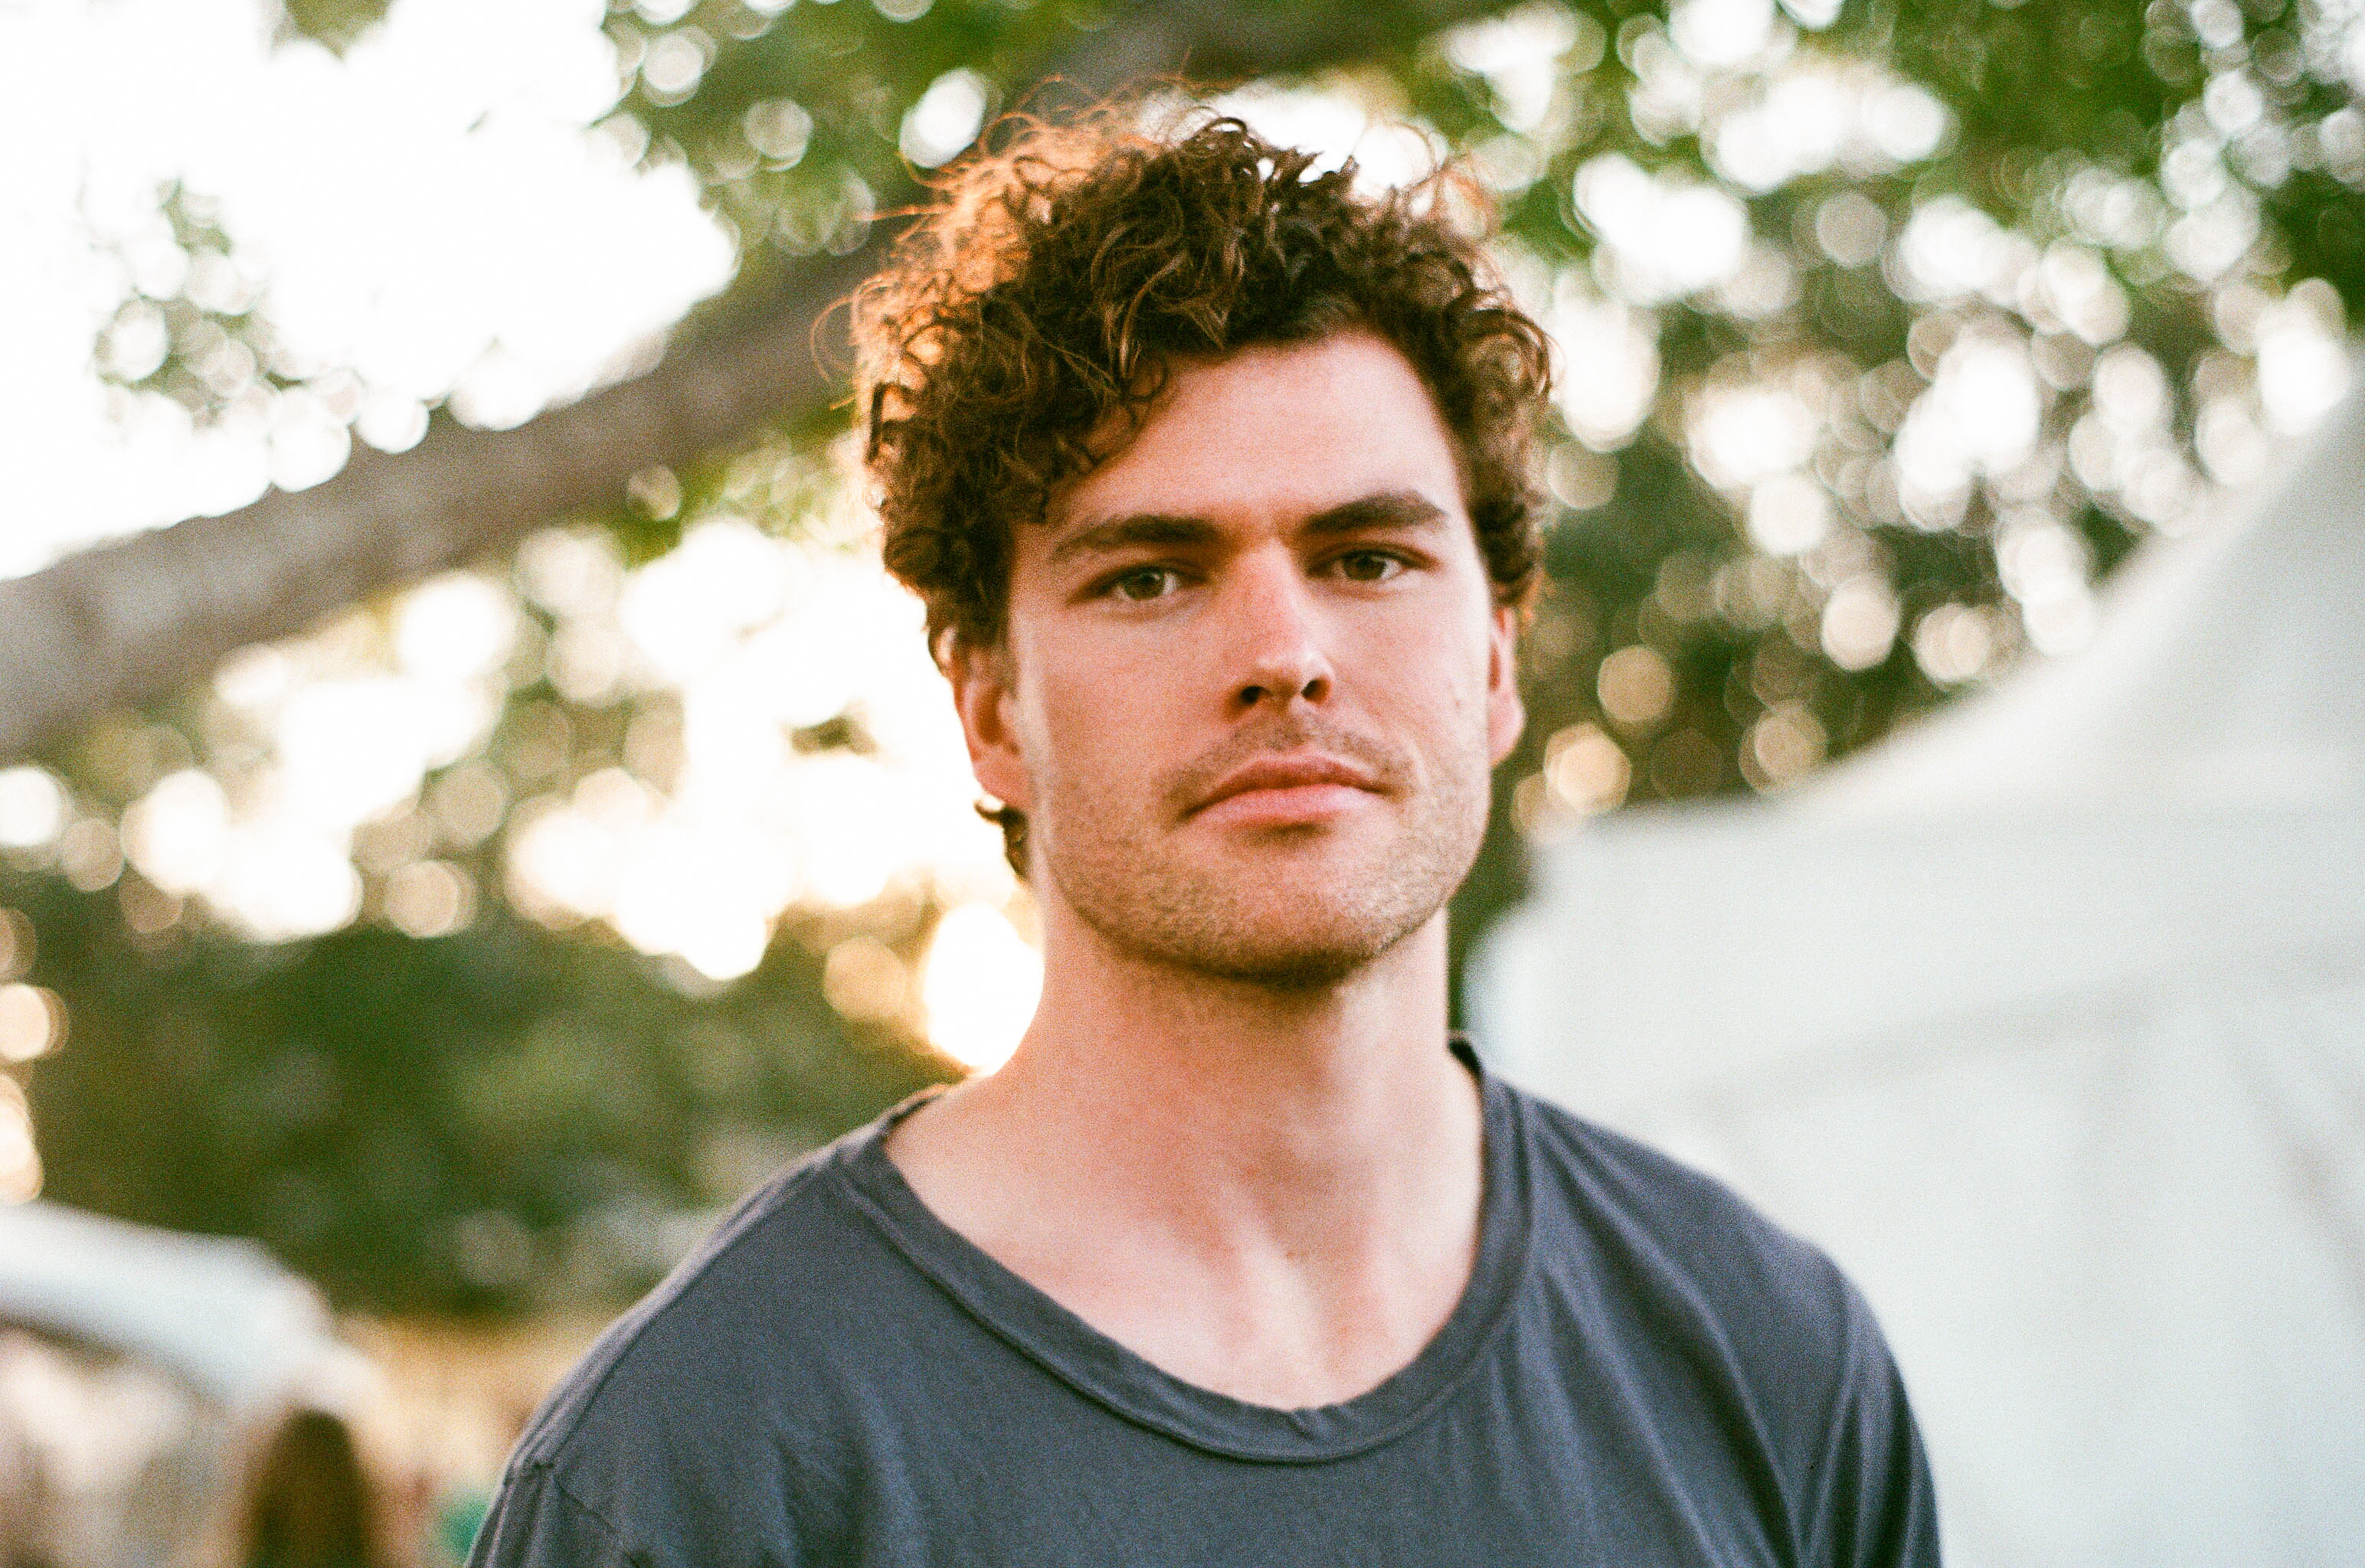 Vance Joy's 'Riptide' hits 1 billion streams and gets vinyl release